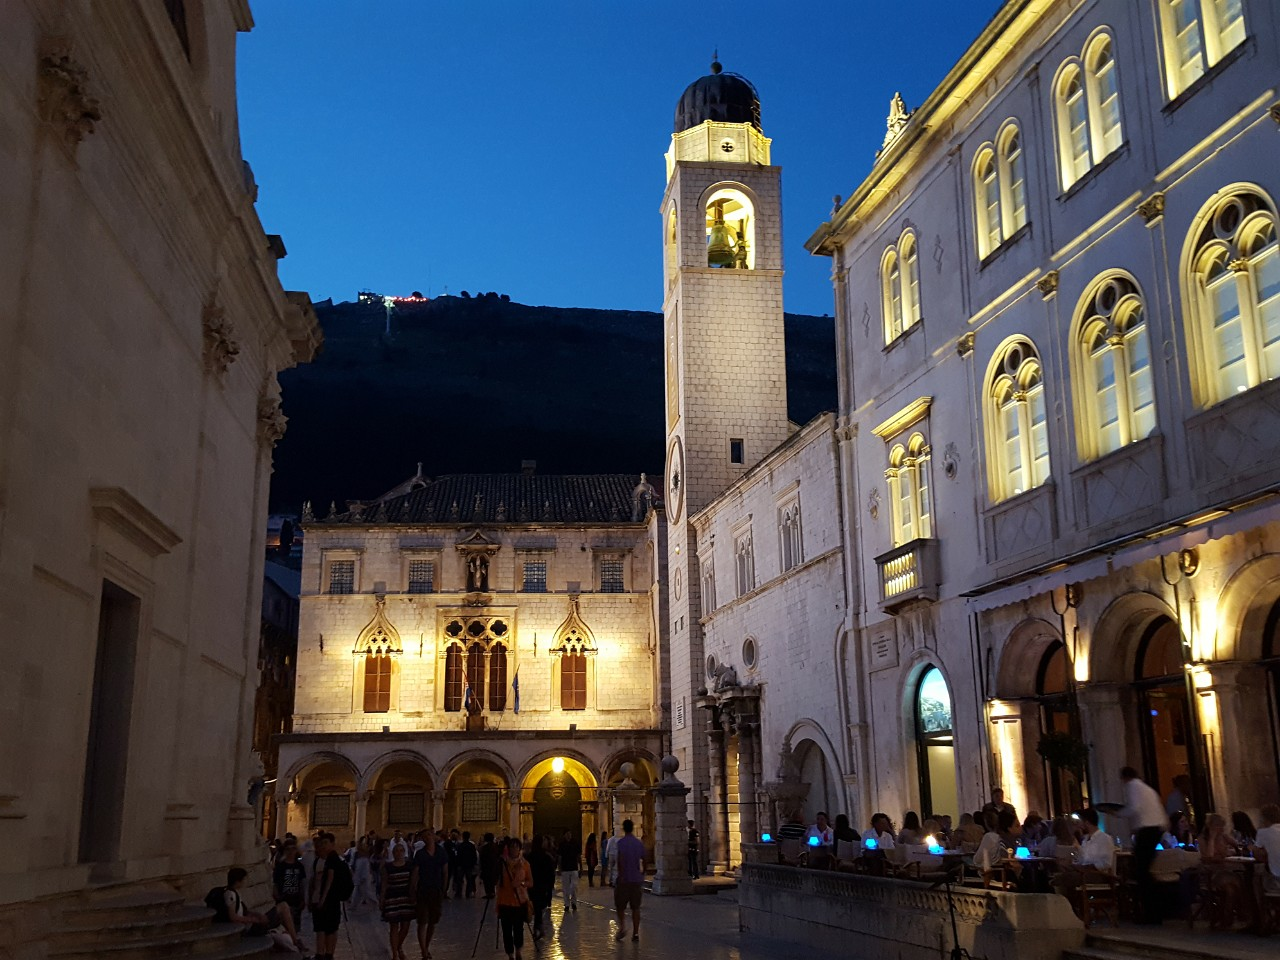 Rectors Palace, Clocktower and Sponza Palace